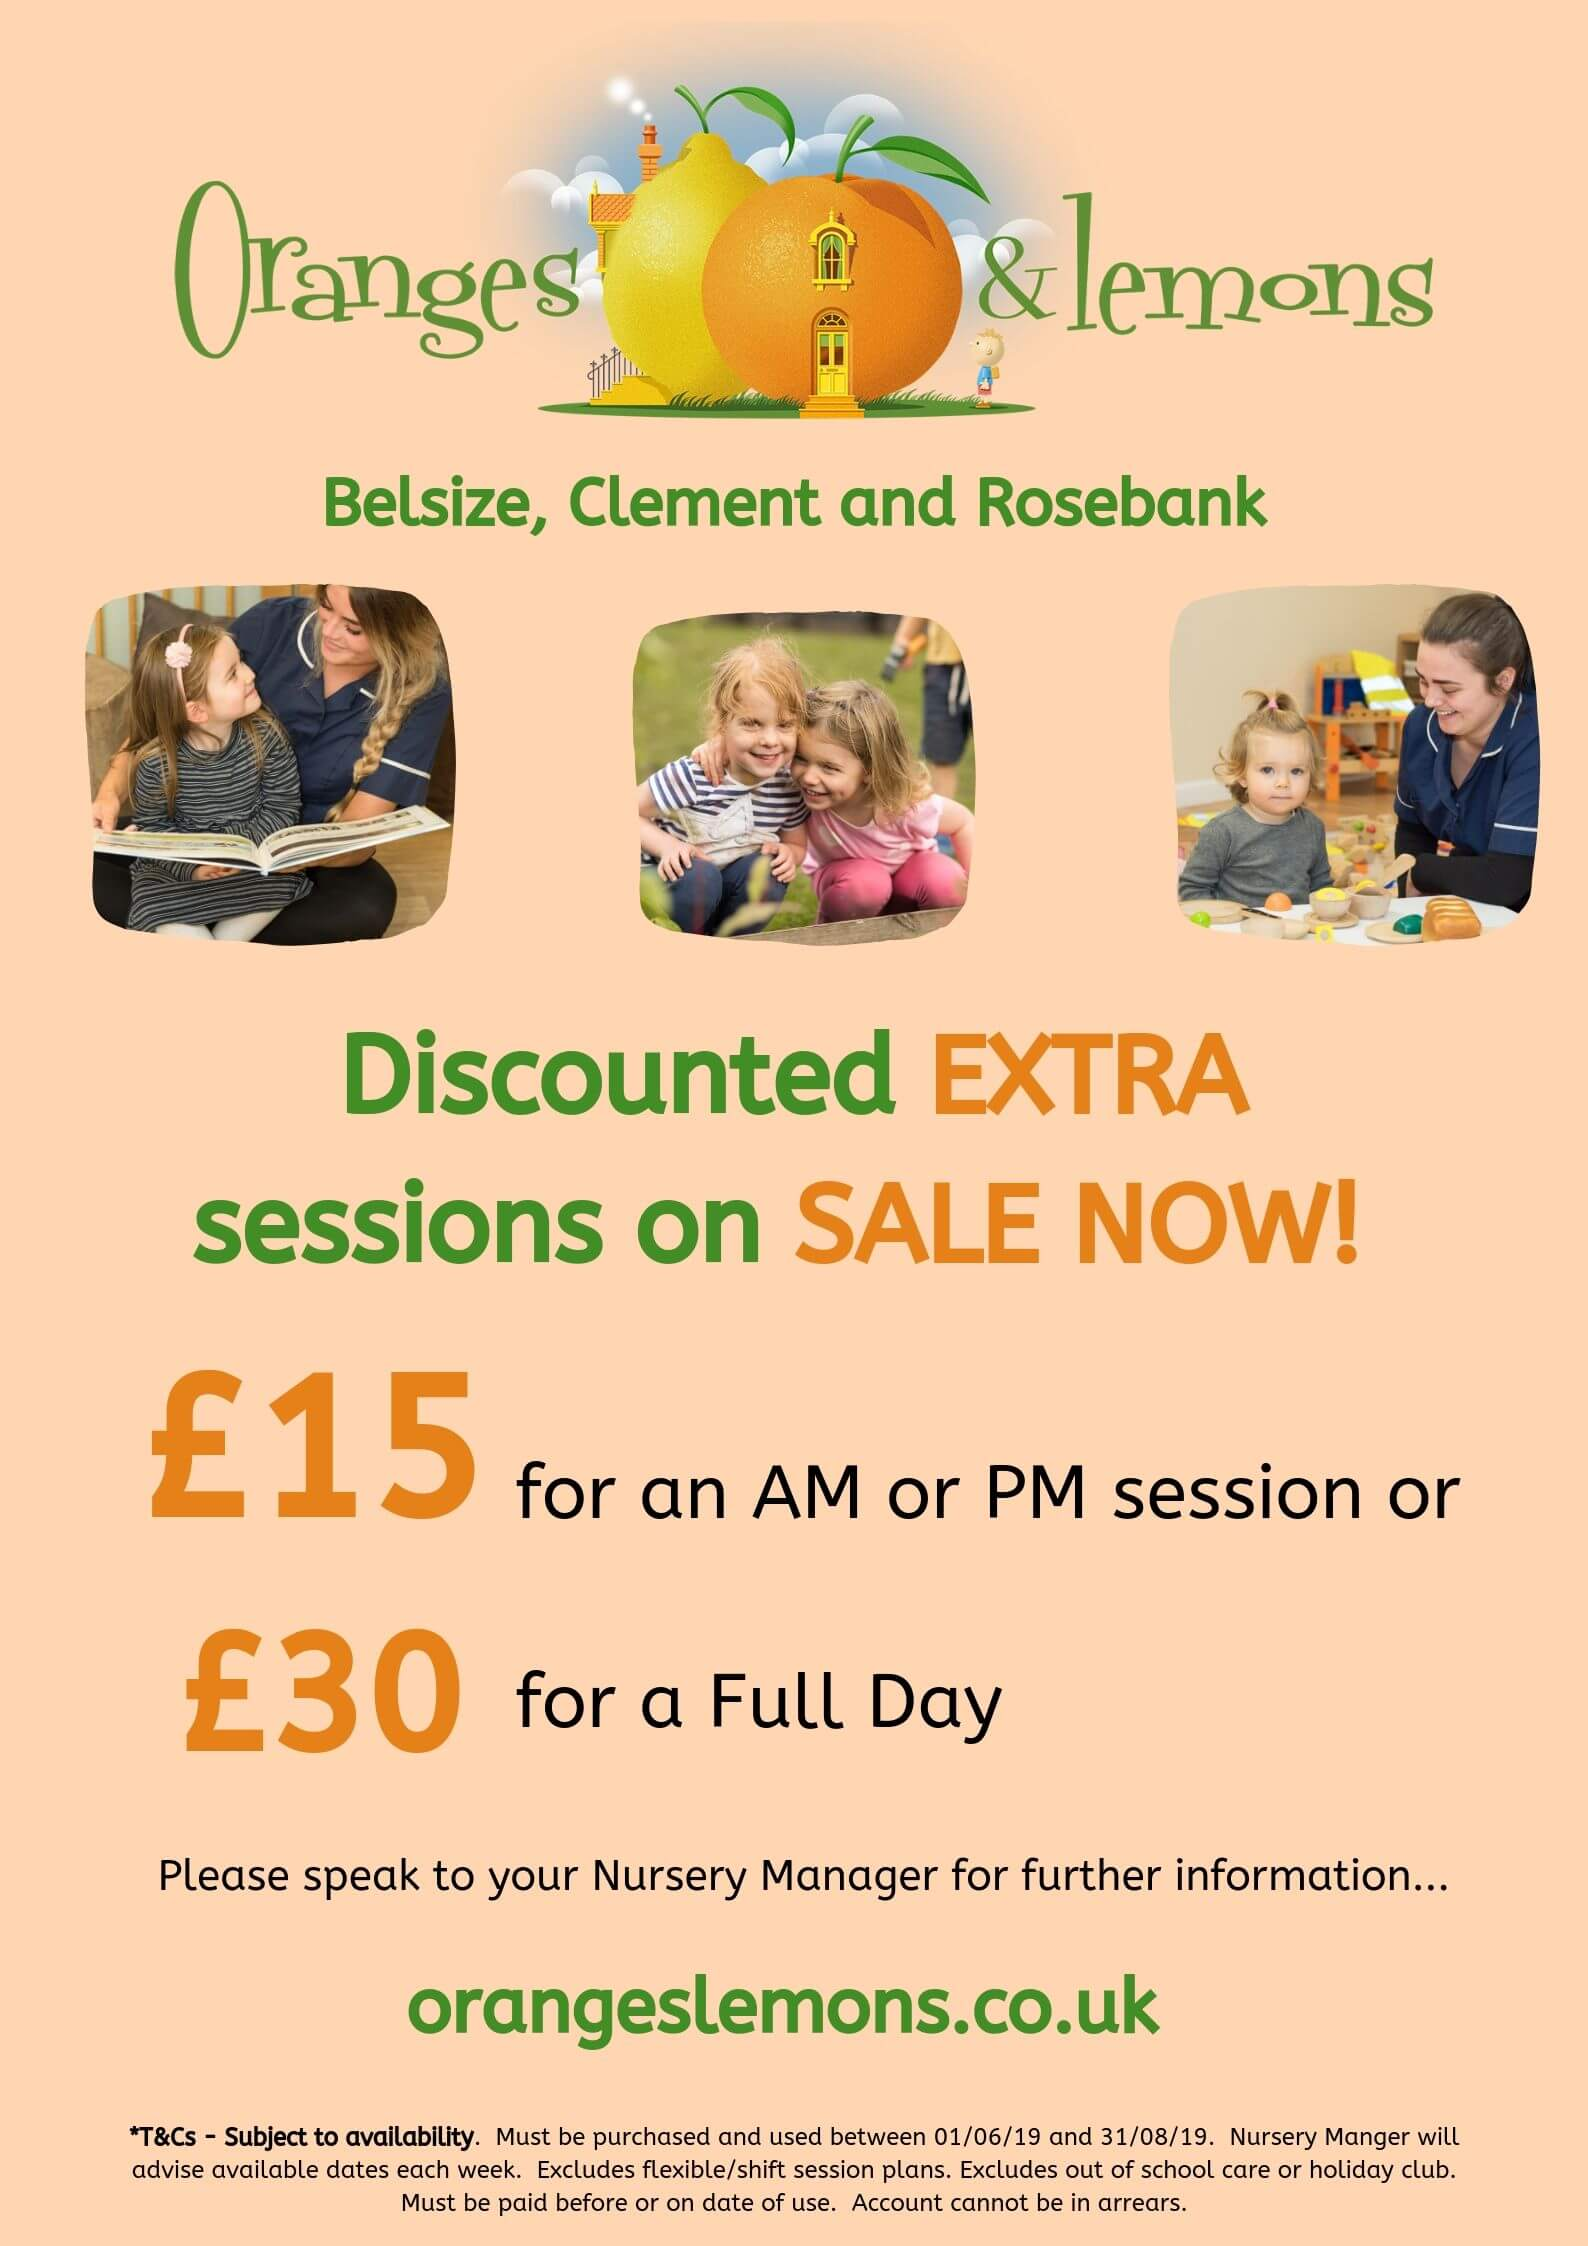 oranges and lemons discounted sessions